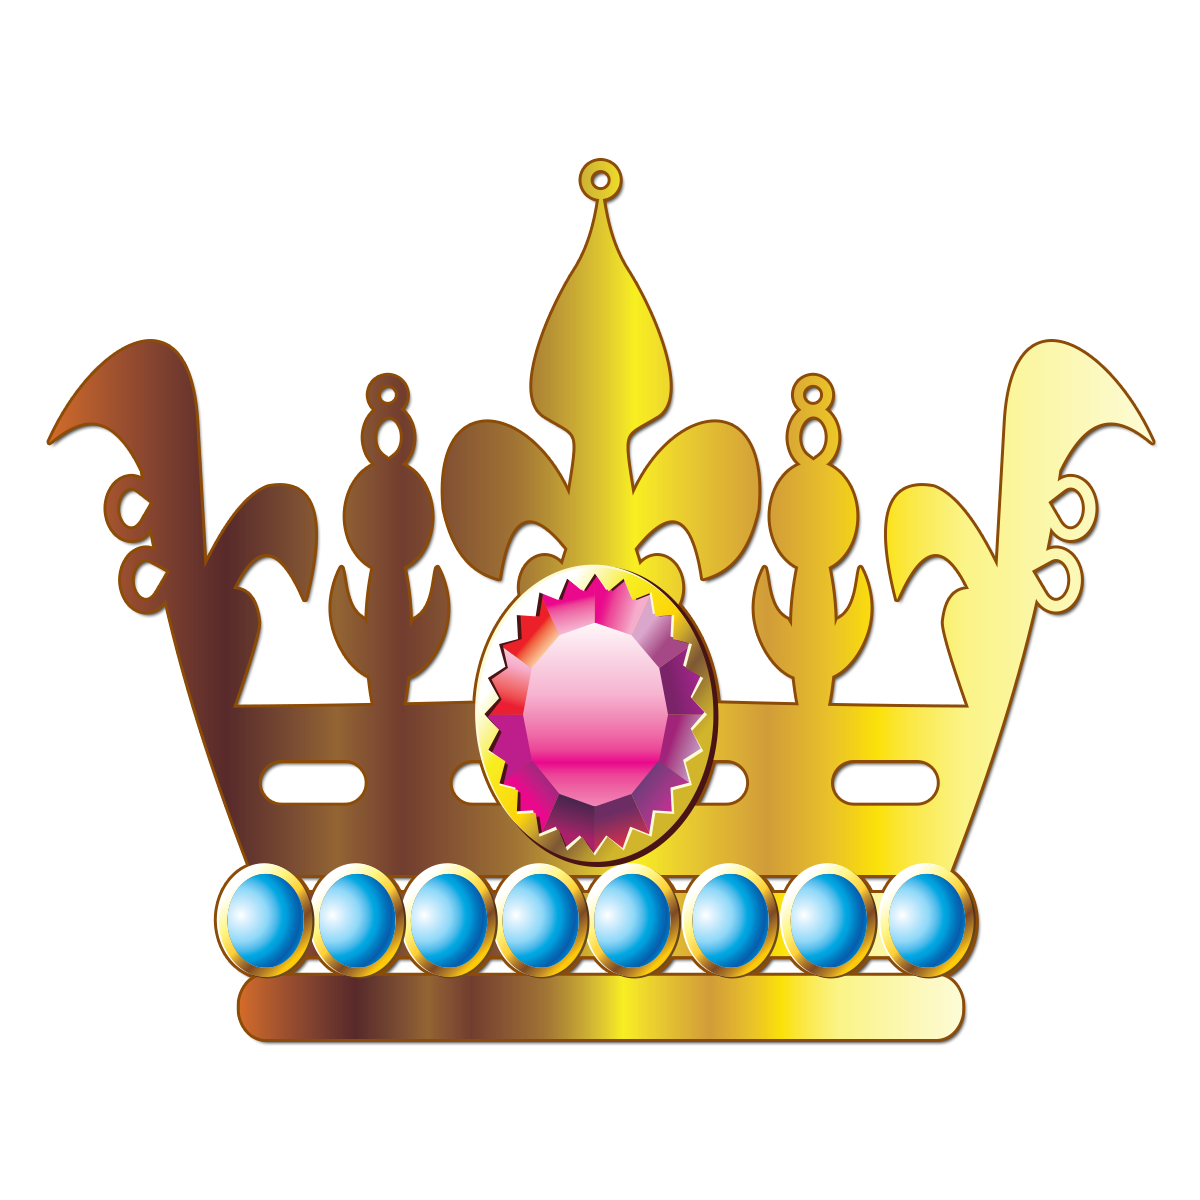 Free Download High Quality Crown Png Image Transparent Background It Is Good Quality Crown Png Image Transparent It Can Be U Crown Png Png Images Crown Images